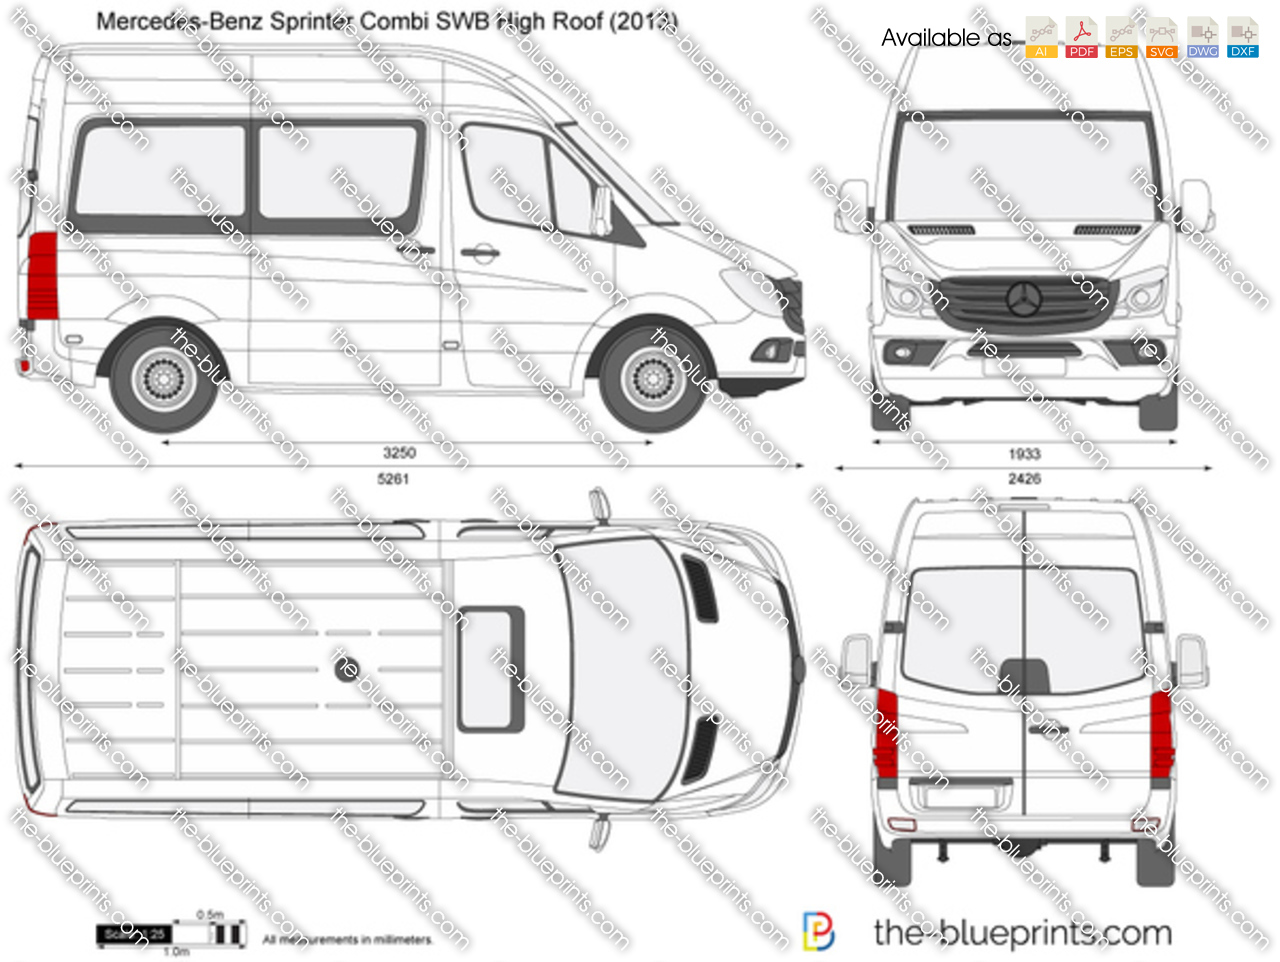 mercedes benz sprinter combi swb high roof vector drawing. Black Bedroom Furniture Sets. Home Design Ideas